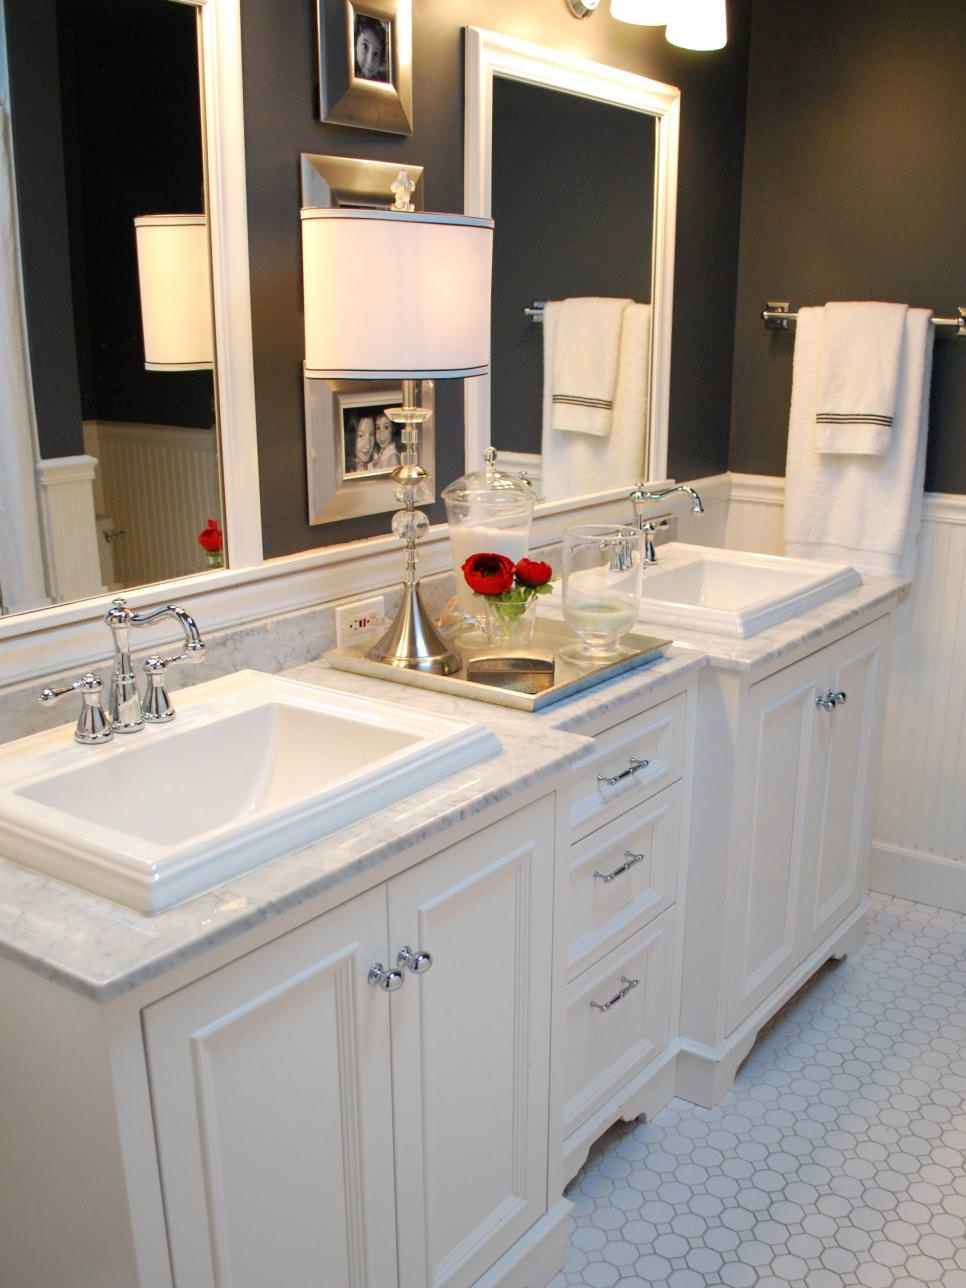 24 Double Bathroom Vanity Ideas Bathroom Designs Design Trends Premium